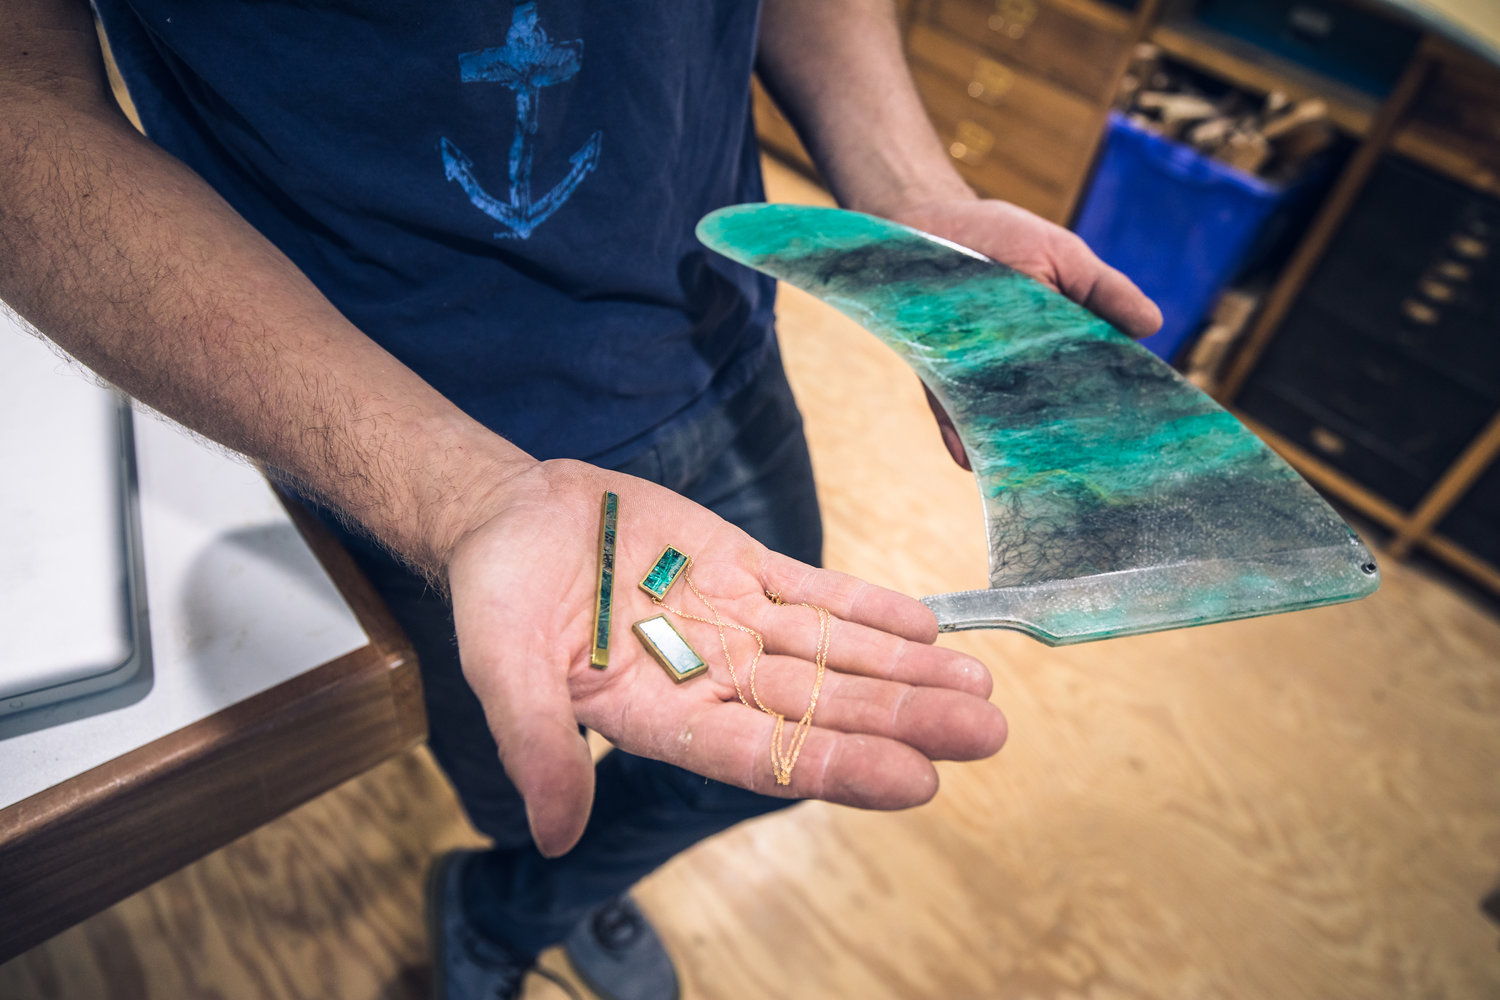 The mission of Spirare Surf Boards is to breath new life into the industry.   Kevin Cunningham also gives new life to marine refuse and debris mixed with eco-friendly resin to make his own fins and jewelry.